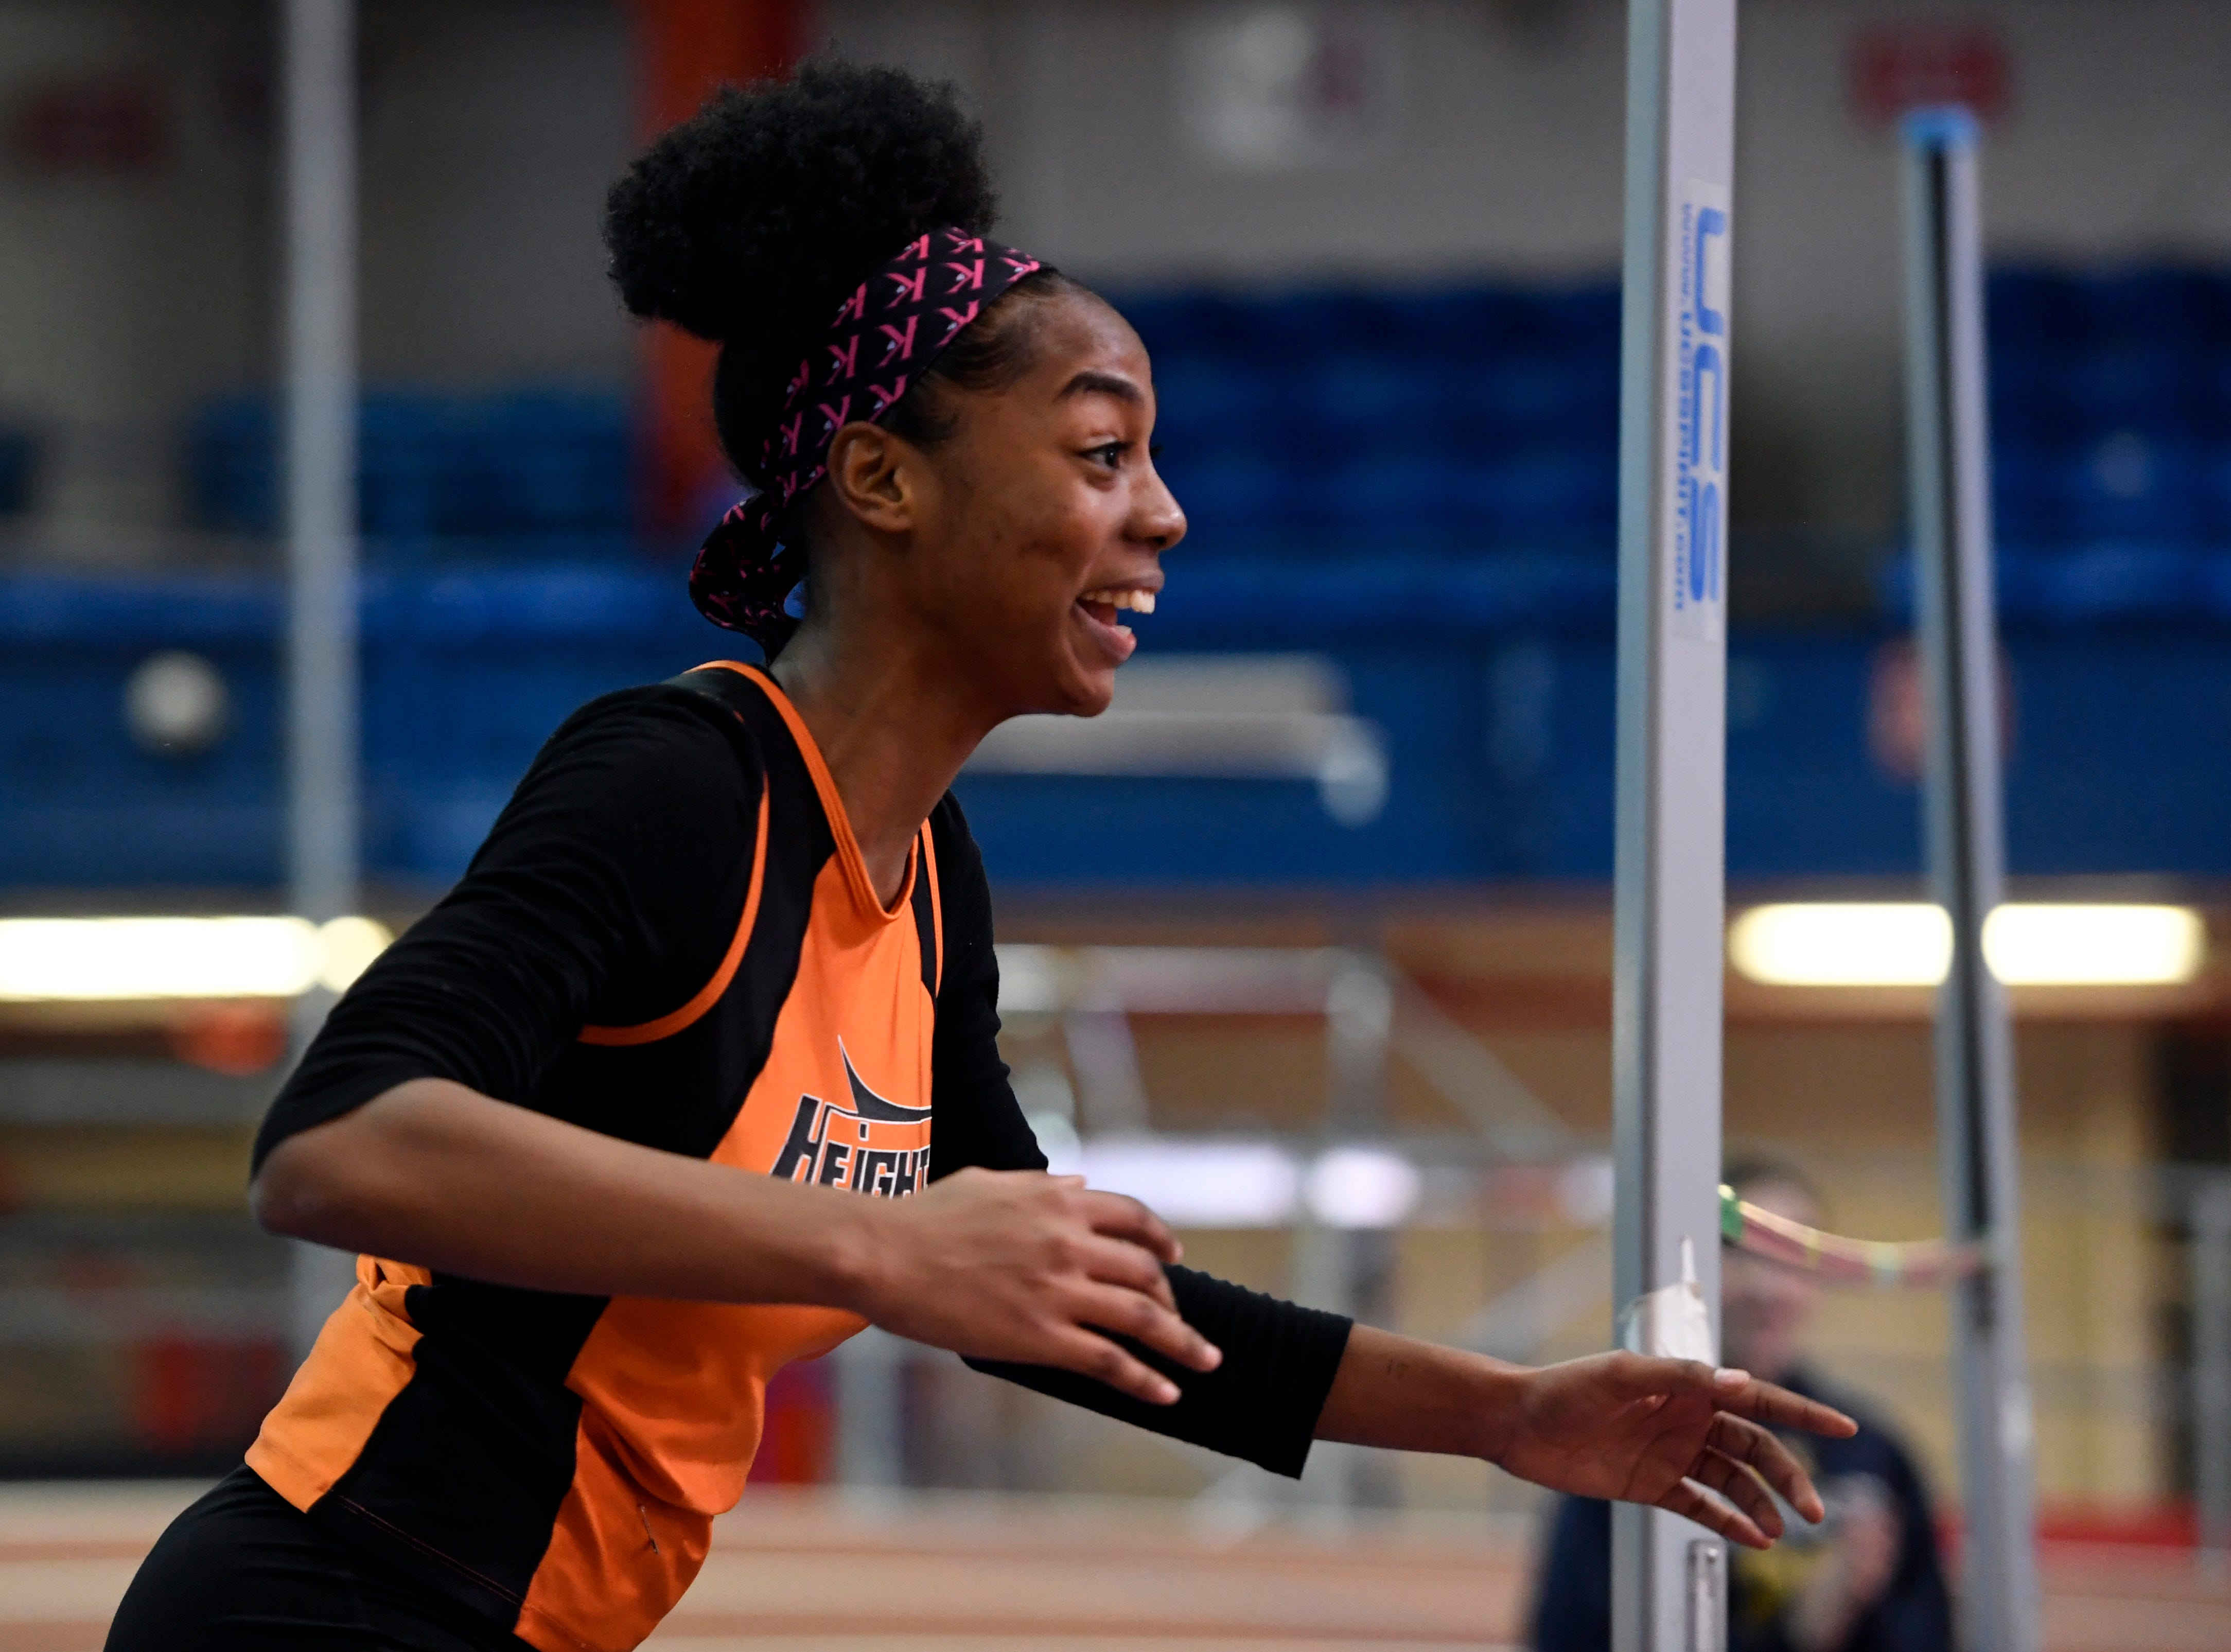 Talia Ferguson of Hasbrouck Heights reacts after clearing 5-feet-2-inches in the high jump for the first time during the NJIC track meet at the Armory Track on Monday, Jan. 7, 2019, in New York.